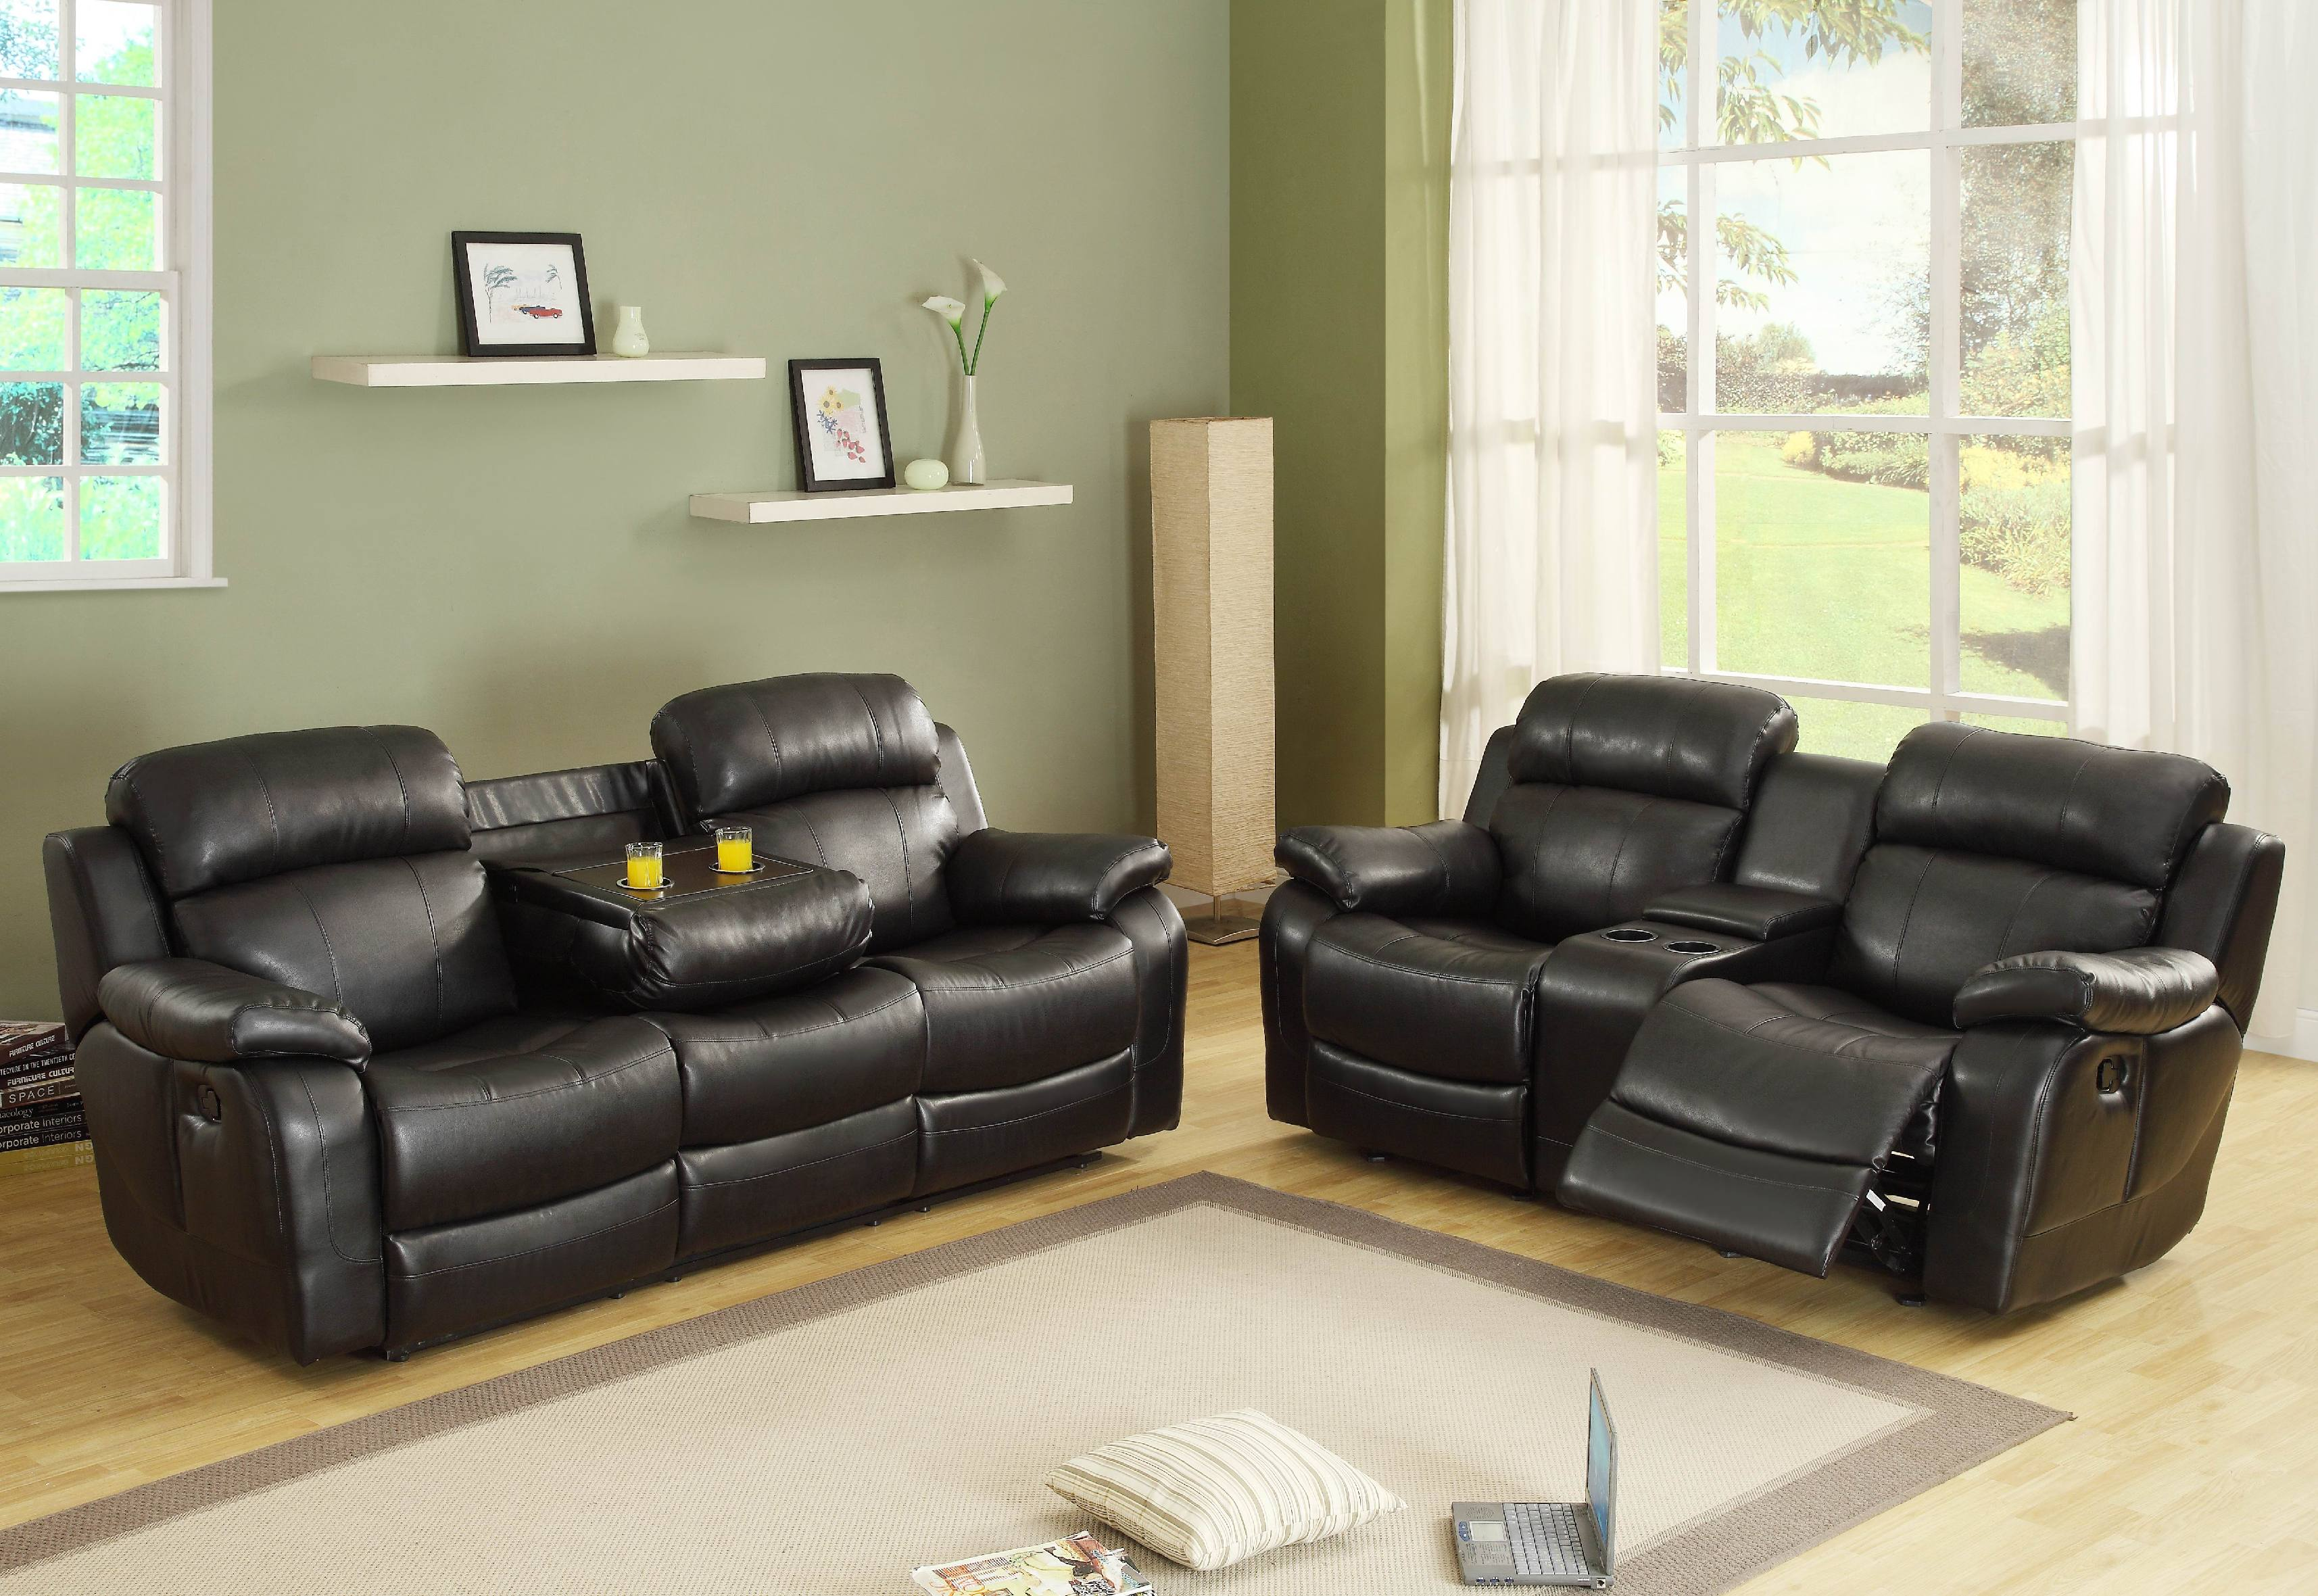 Center Hill Double Reclining Nailhead Sofa in Dark Brown Bonded Leather. $599.99 & Motion Reclining Leather Sofas | Marjen of Chicago | Chicago ... islam-shia.org